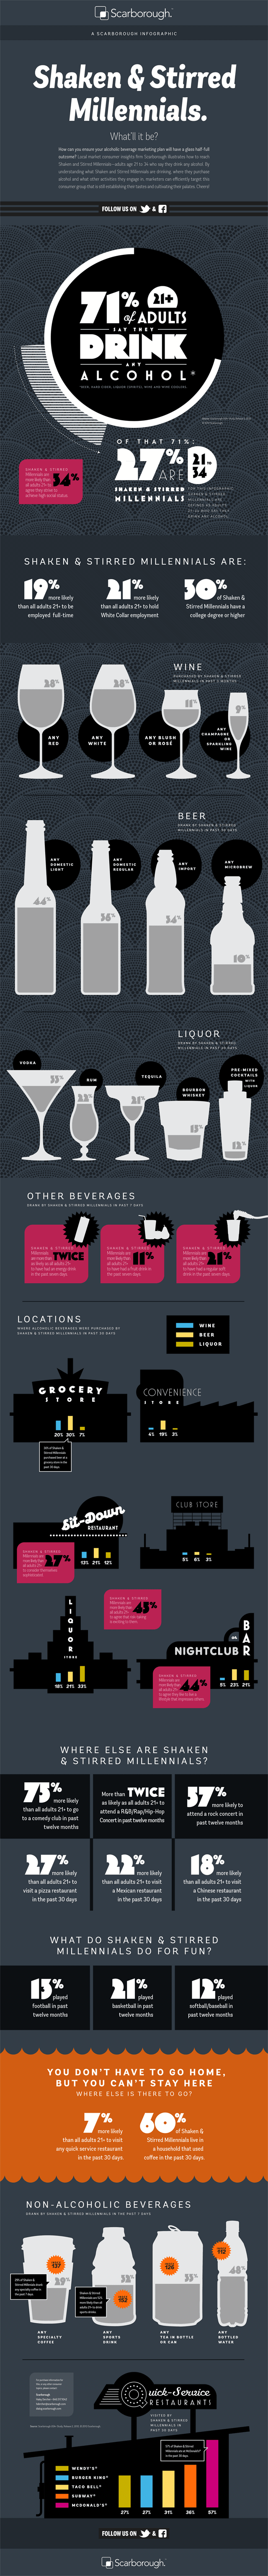 Shaken and Stirred Millenials – A Consumer Group from Scarborough [Infographic]